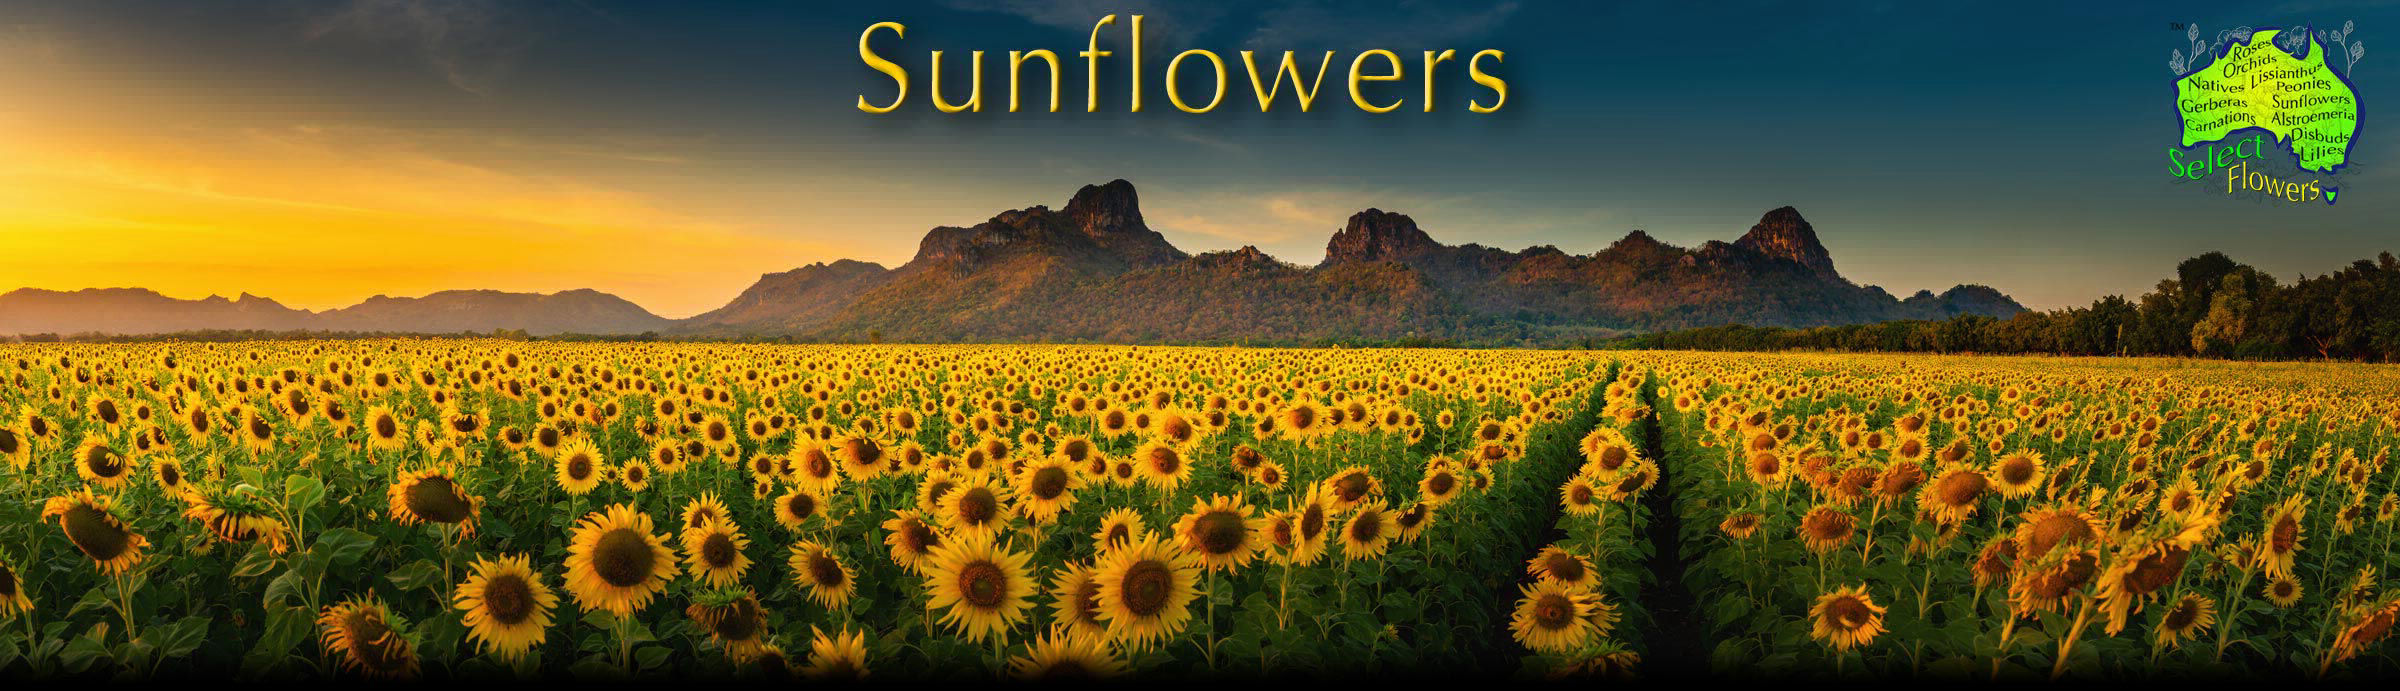 SUNFLOWERS PANORAMA